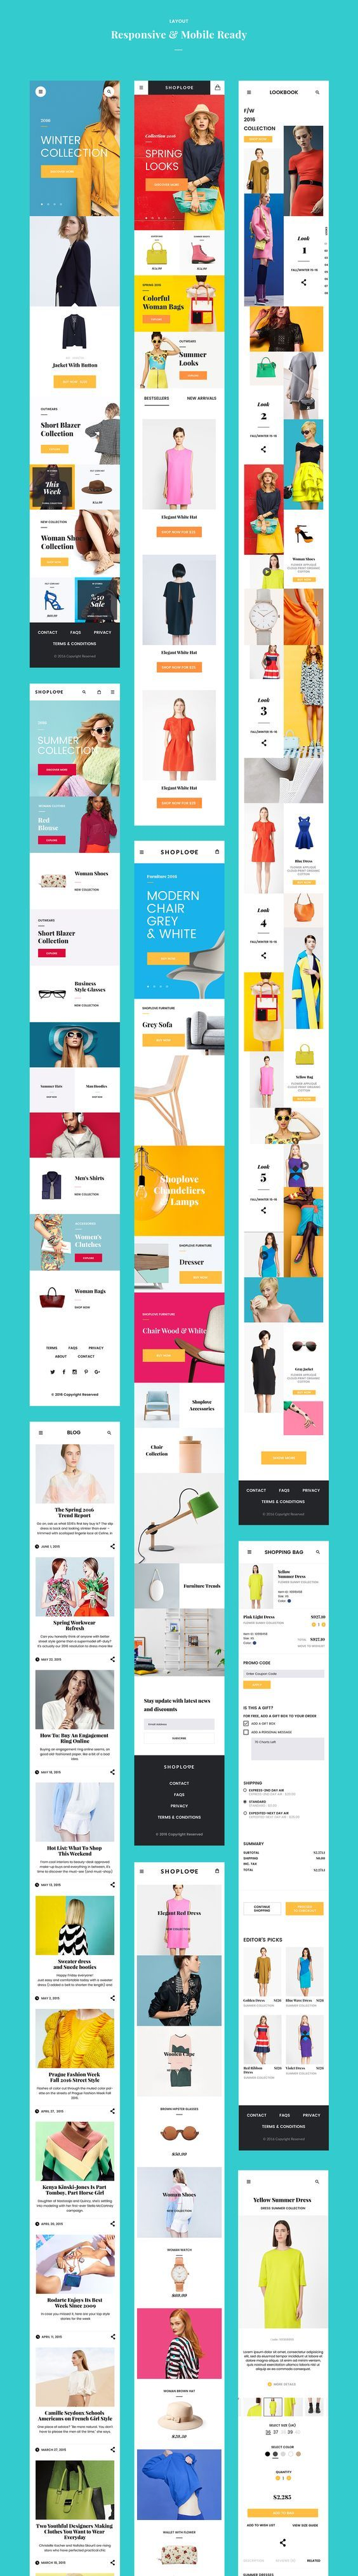 SHOPLOVE on Behance: